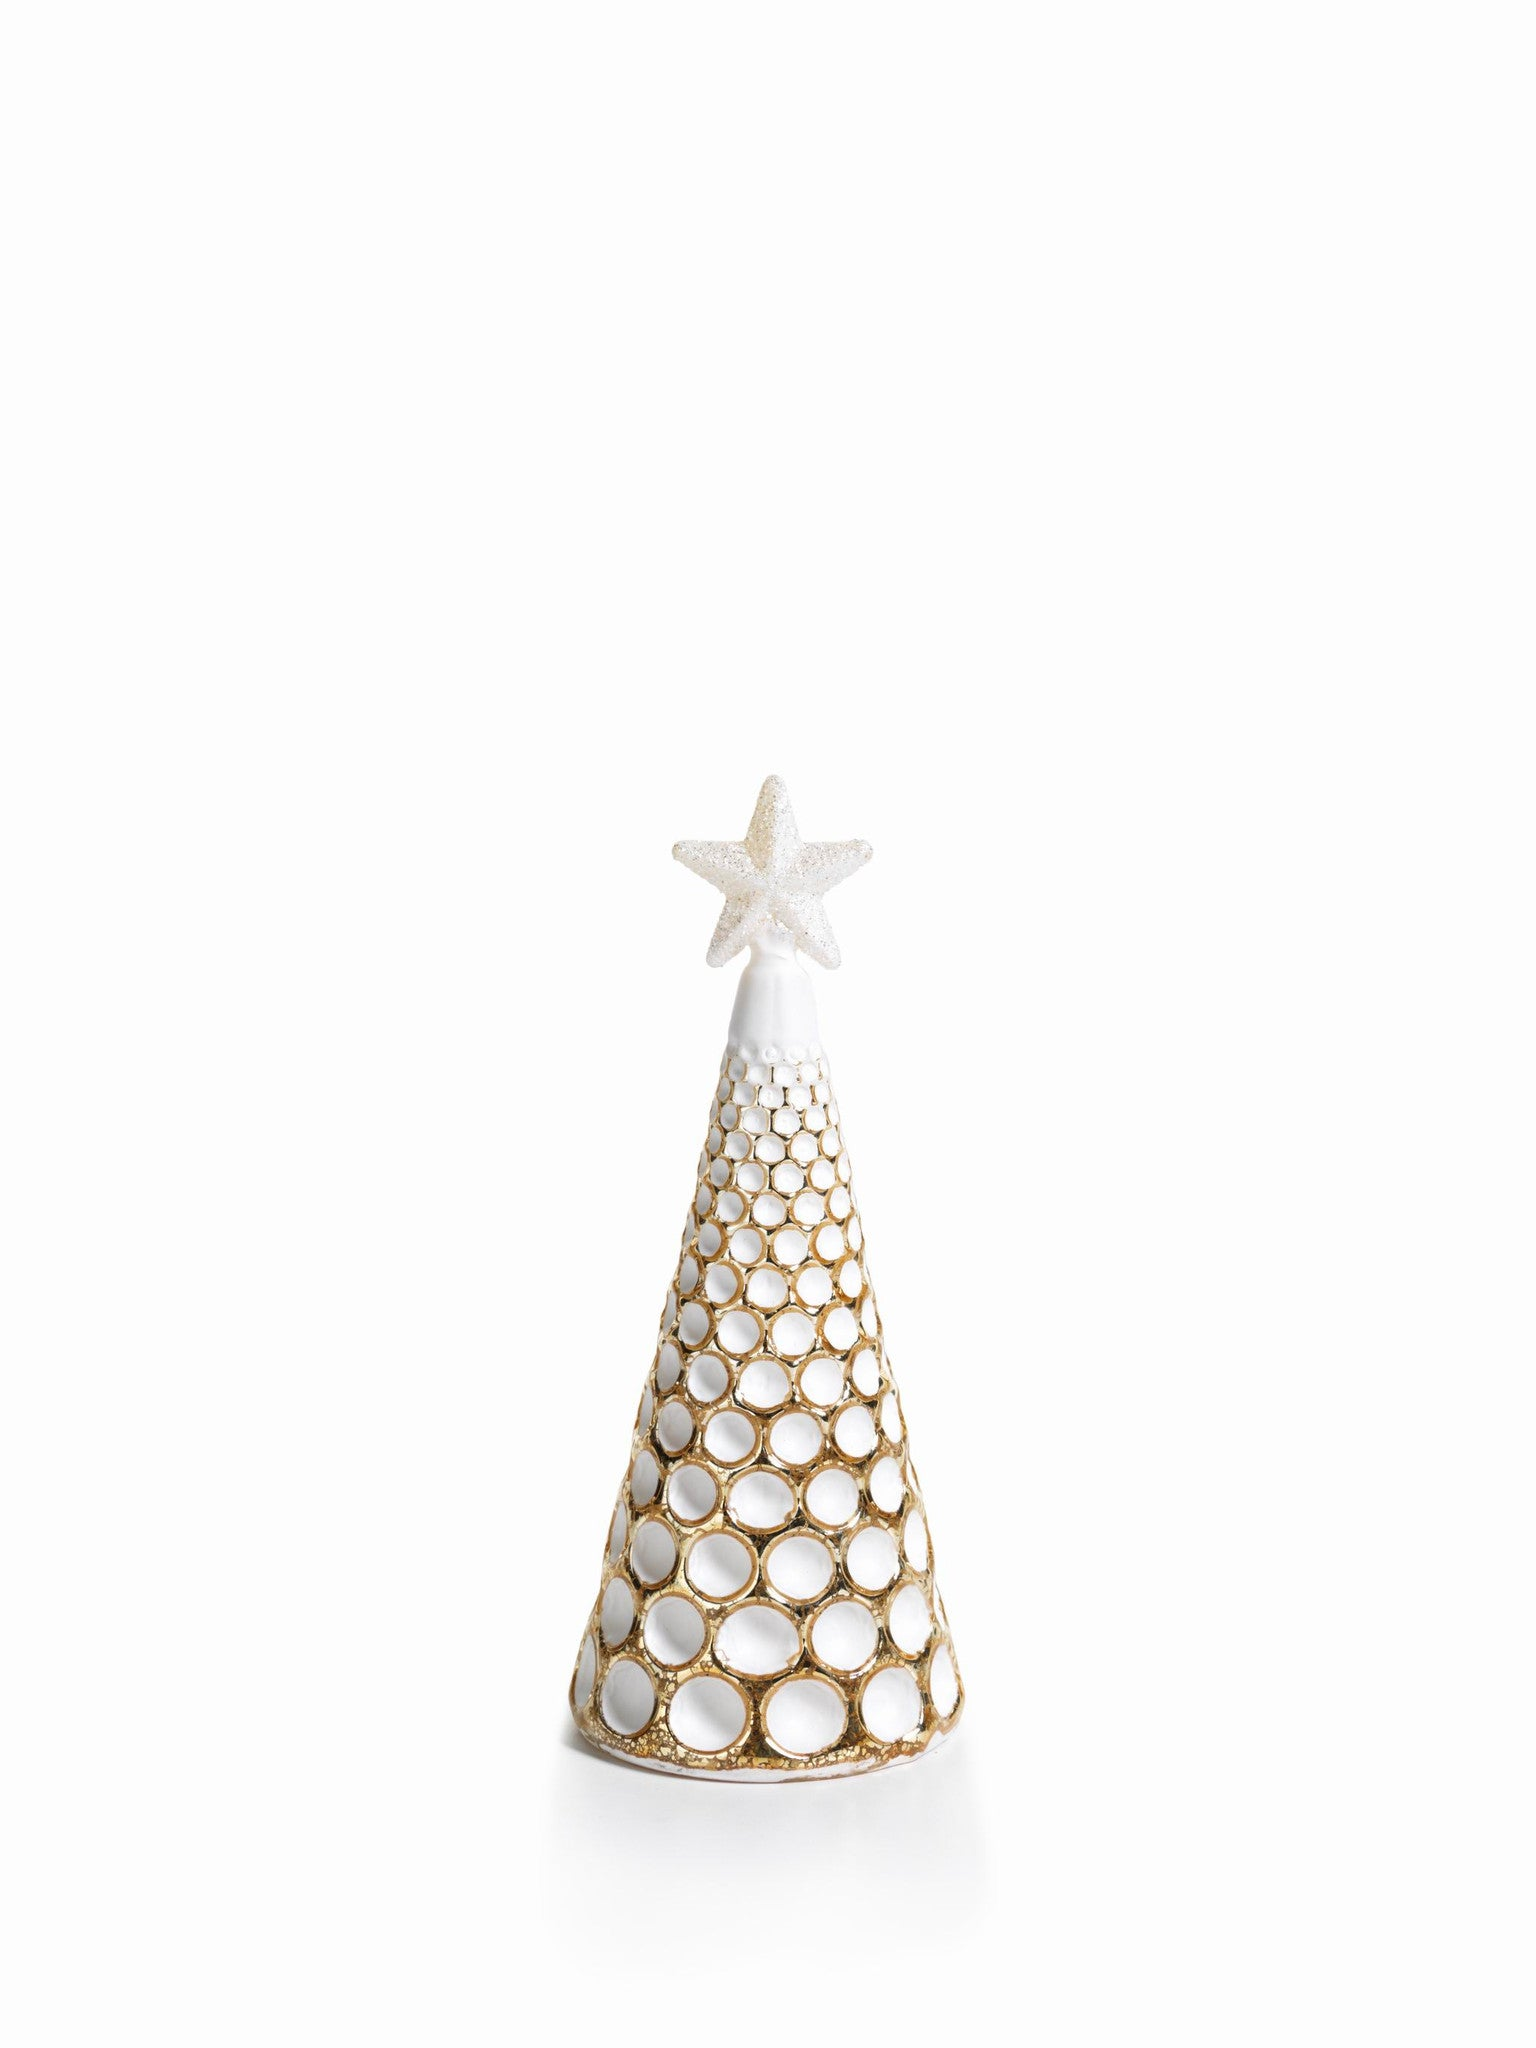 LED Glass Decorative Tree - Gold - Set of 6 - Small / Dimple Cut - CARLYLE AVENUE - 15